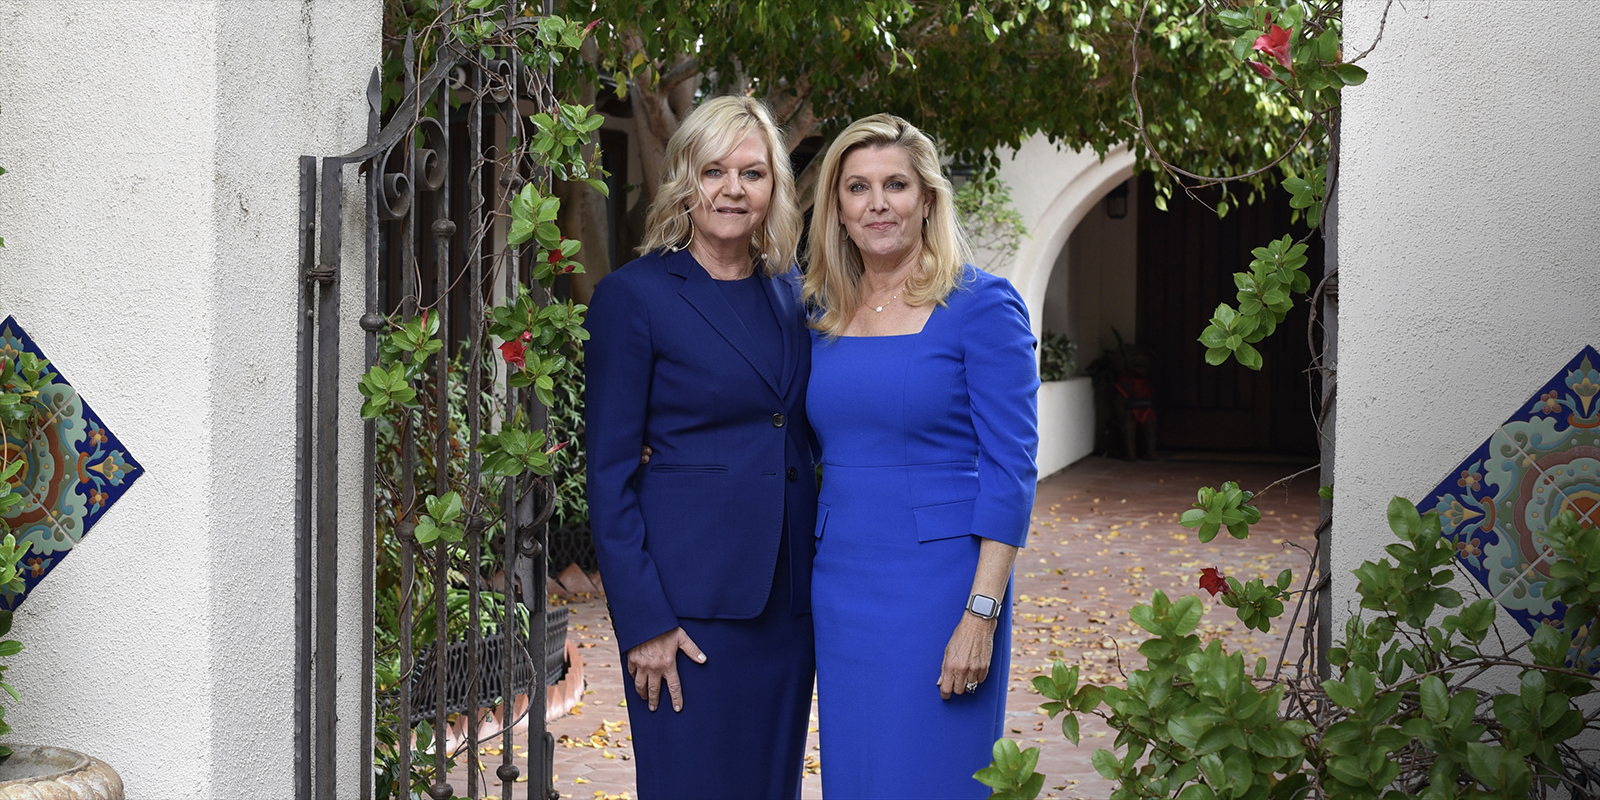 Sisters Lorna and Cynthia Alksne are both alumni of USD's School of Law